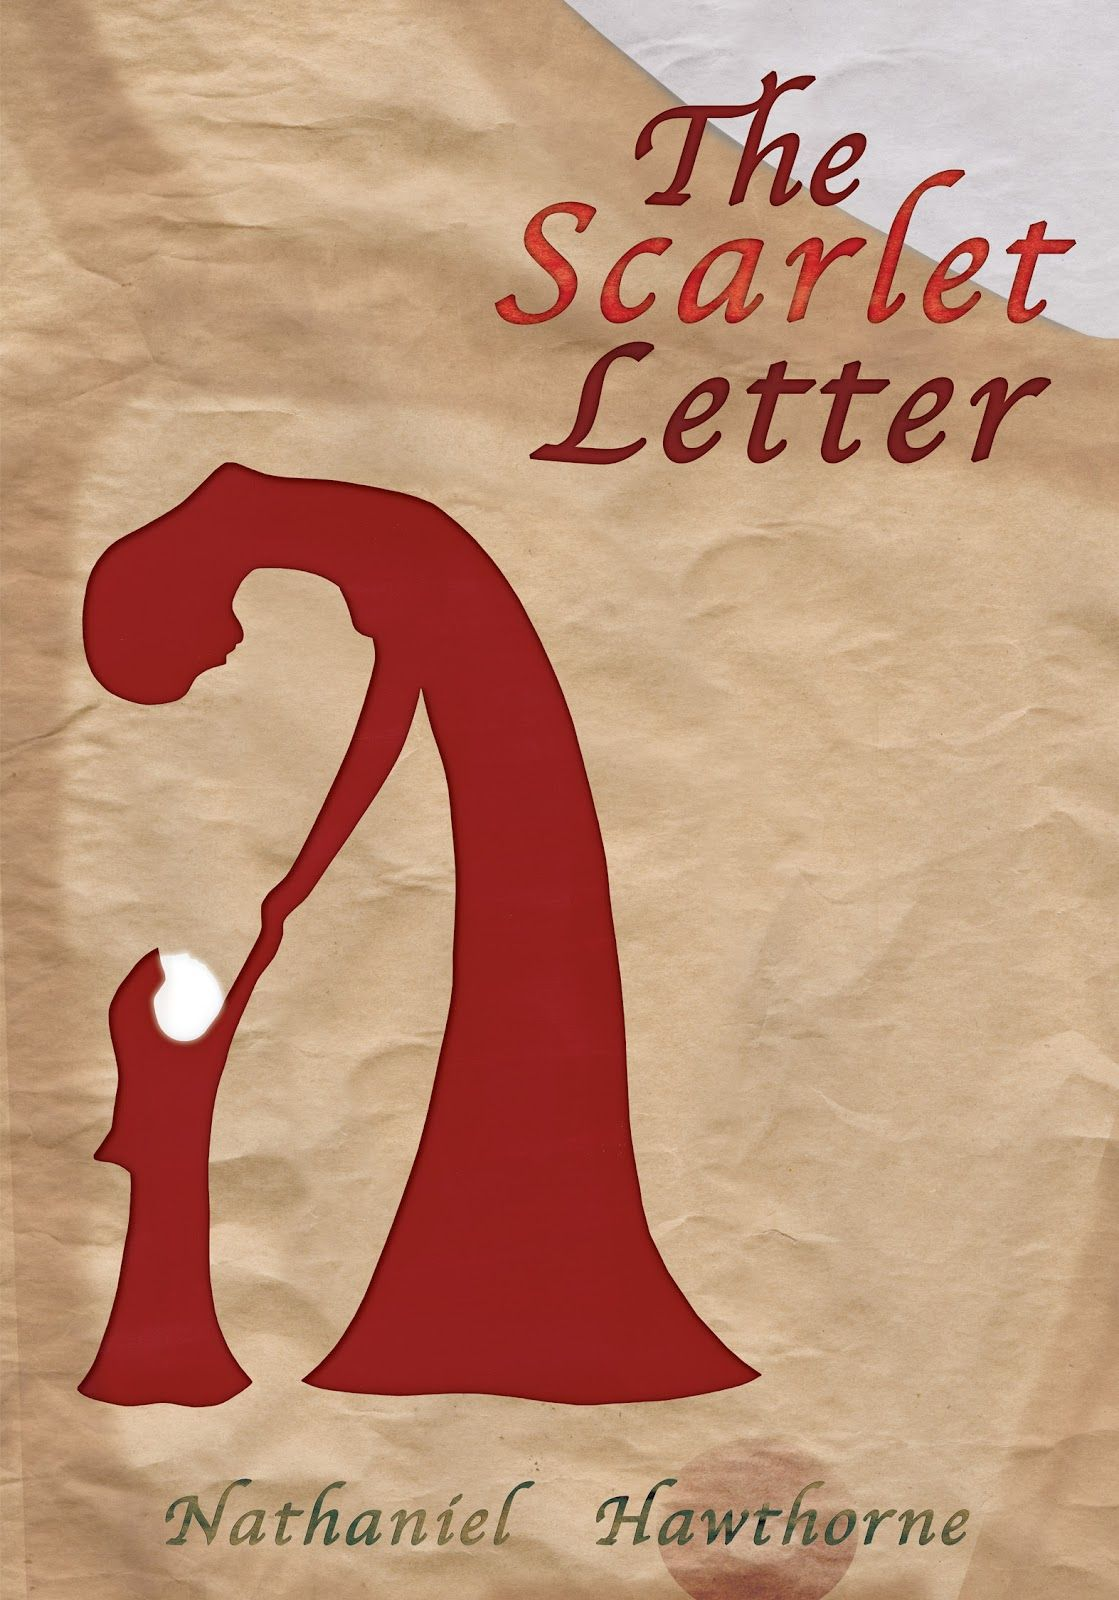 The Scarlet Letter Nathaniel Hawthorne. Cover art by